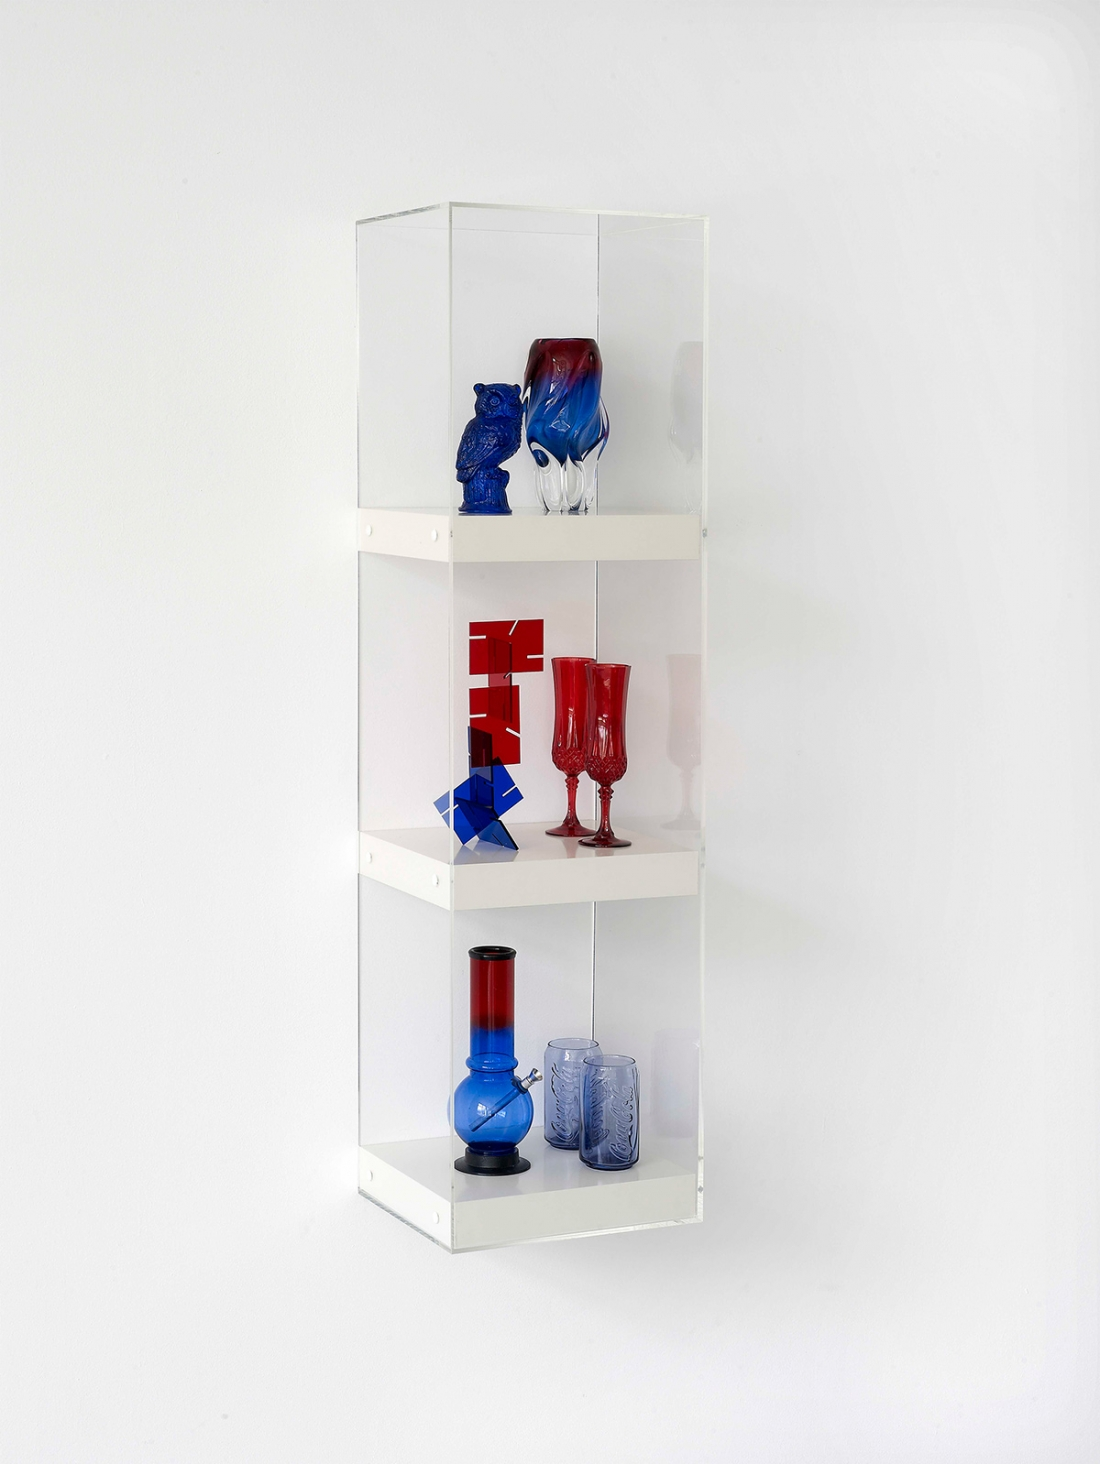 Matthew Darbyshire Untitled: Shelves No. 7 (Series 2) 2010 Resin cast owl figurine, Murano vase, acrylic desk sculpture, crystal d'arque champagne flutes, acrylic bong, McDonald's Coca Cola glasses, shelves, Perspex case 120 × 30 × 30 cm Courtesy of the artist and Herald St, London